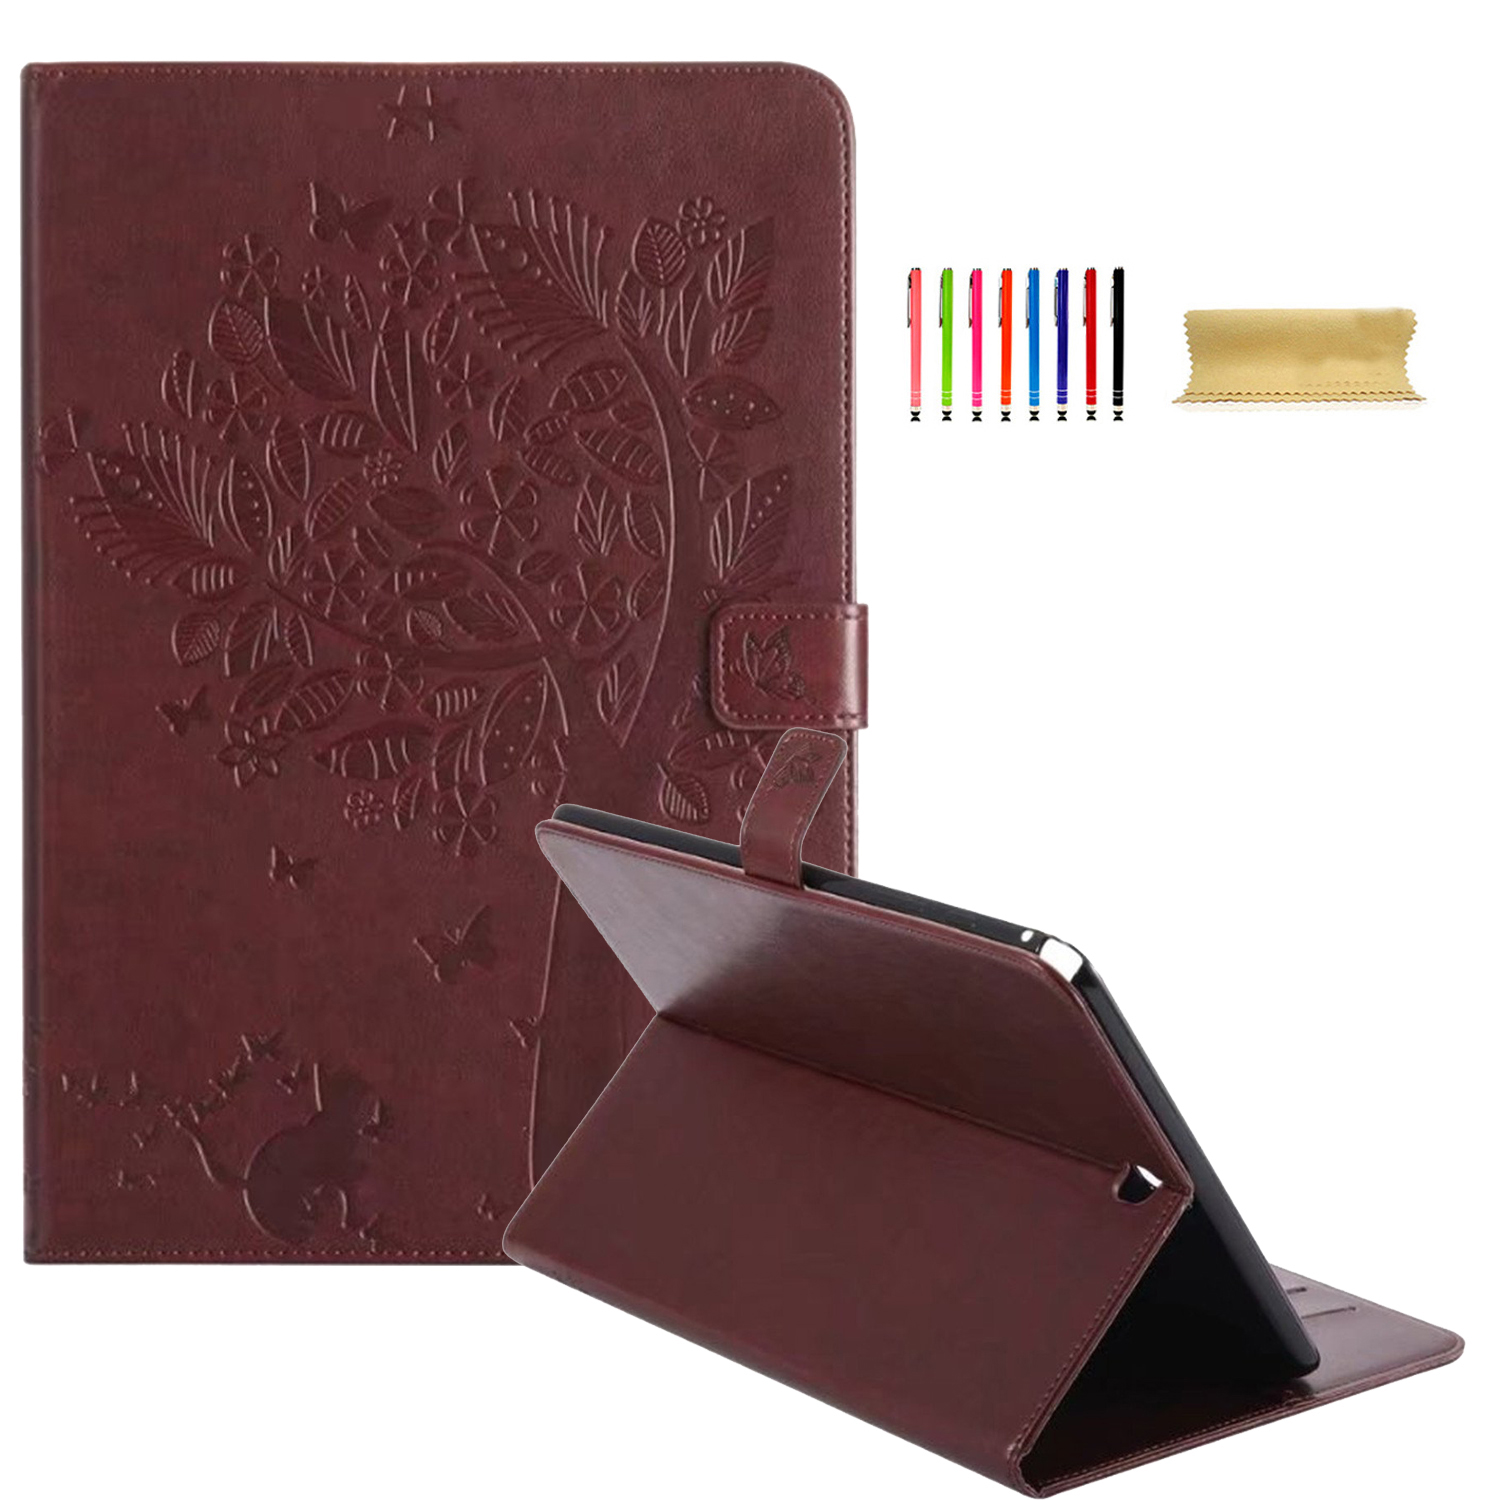 """Galaxy Tab A 9.7 Case, Goodest Premium PU Leather Embossed Stand Smart Case [Card Slots] Folio Flip Wallet Stand Cover with Auto Sleep/Wake Feature for Samsung Galaxy Tab A 9.7"""" SM-T550/P550, Coffee"""